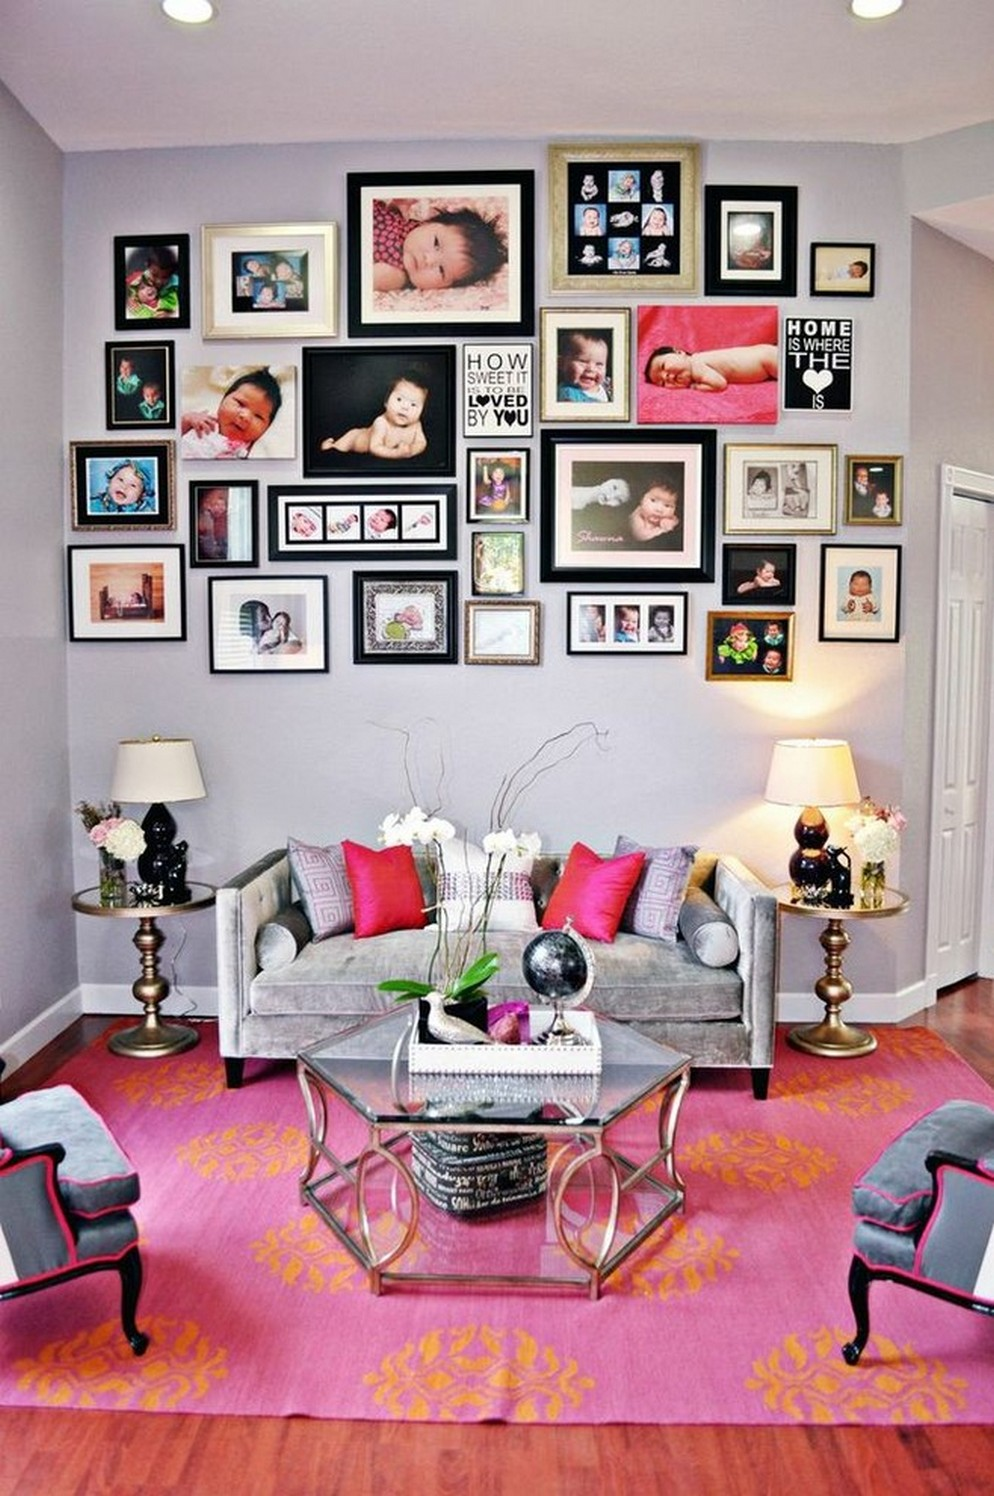 Picture frame wall collage ideas living room contemporary with pink drapes mirrored architecturein - Wall collage ideas living room ...